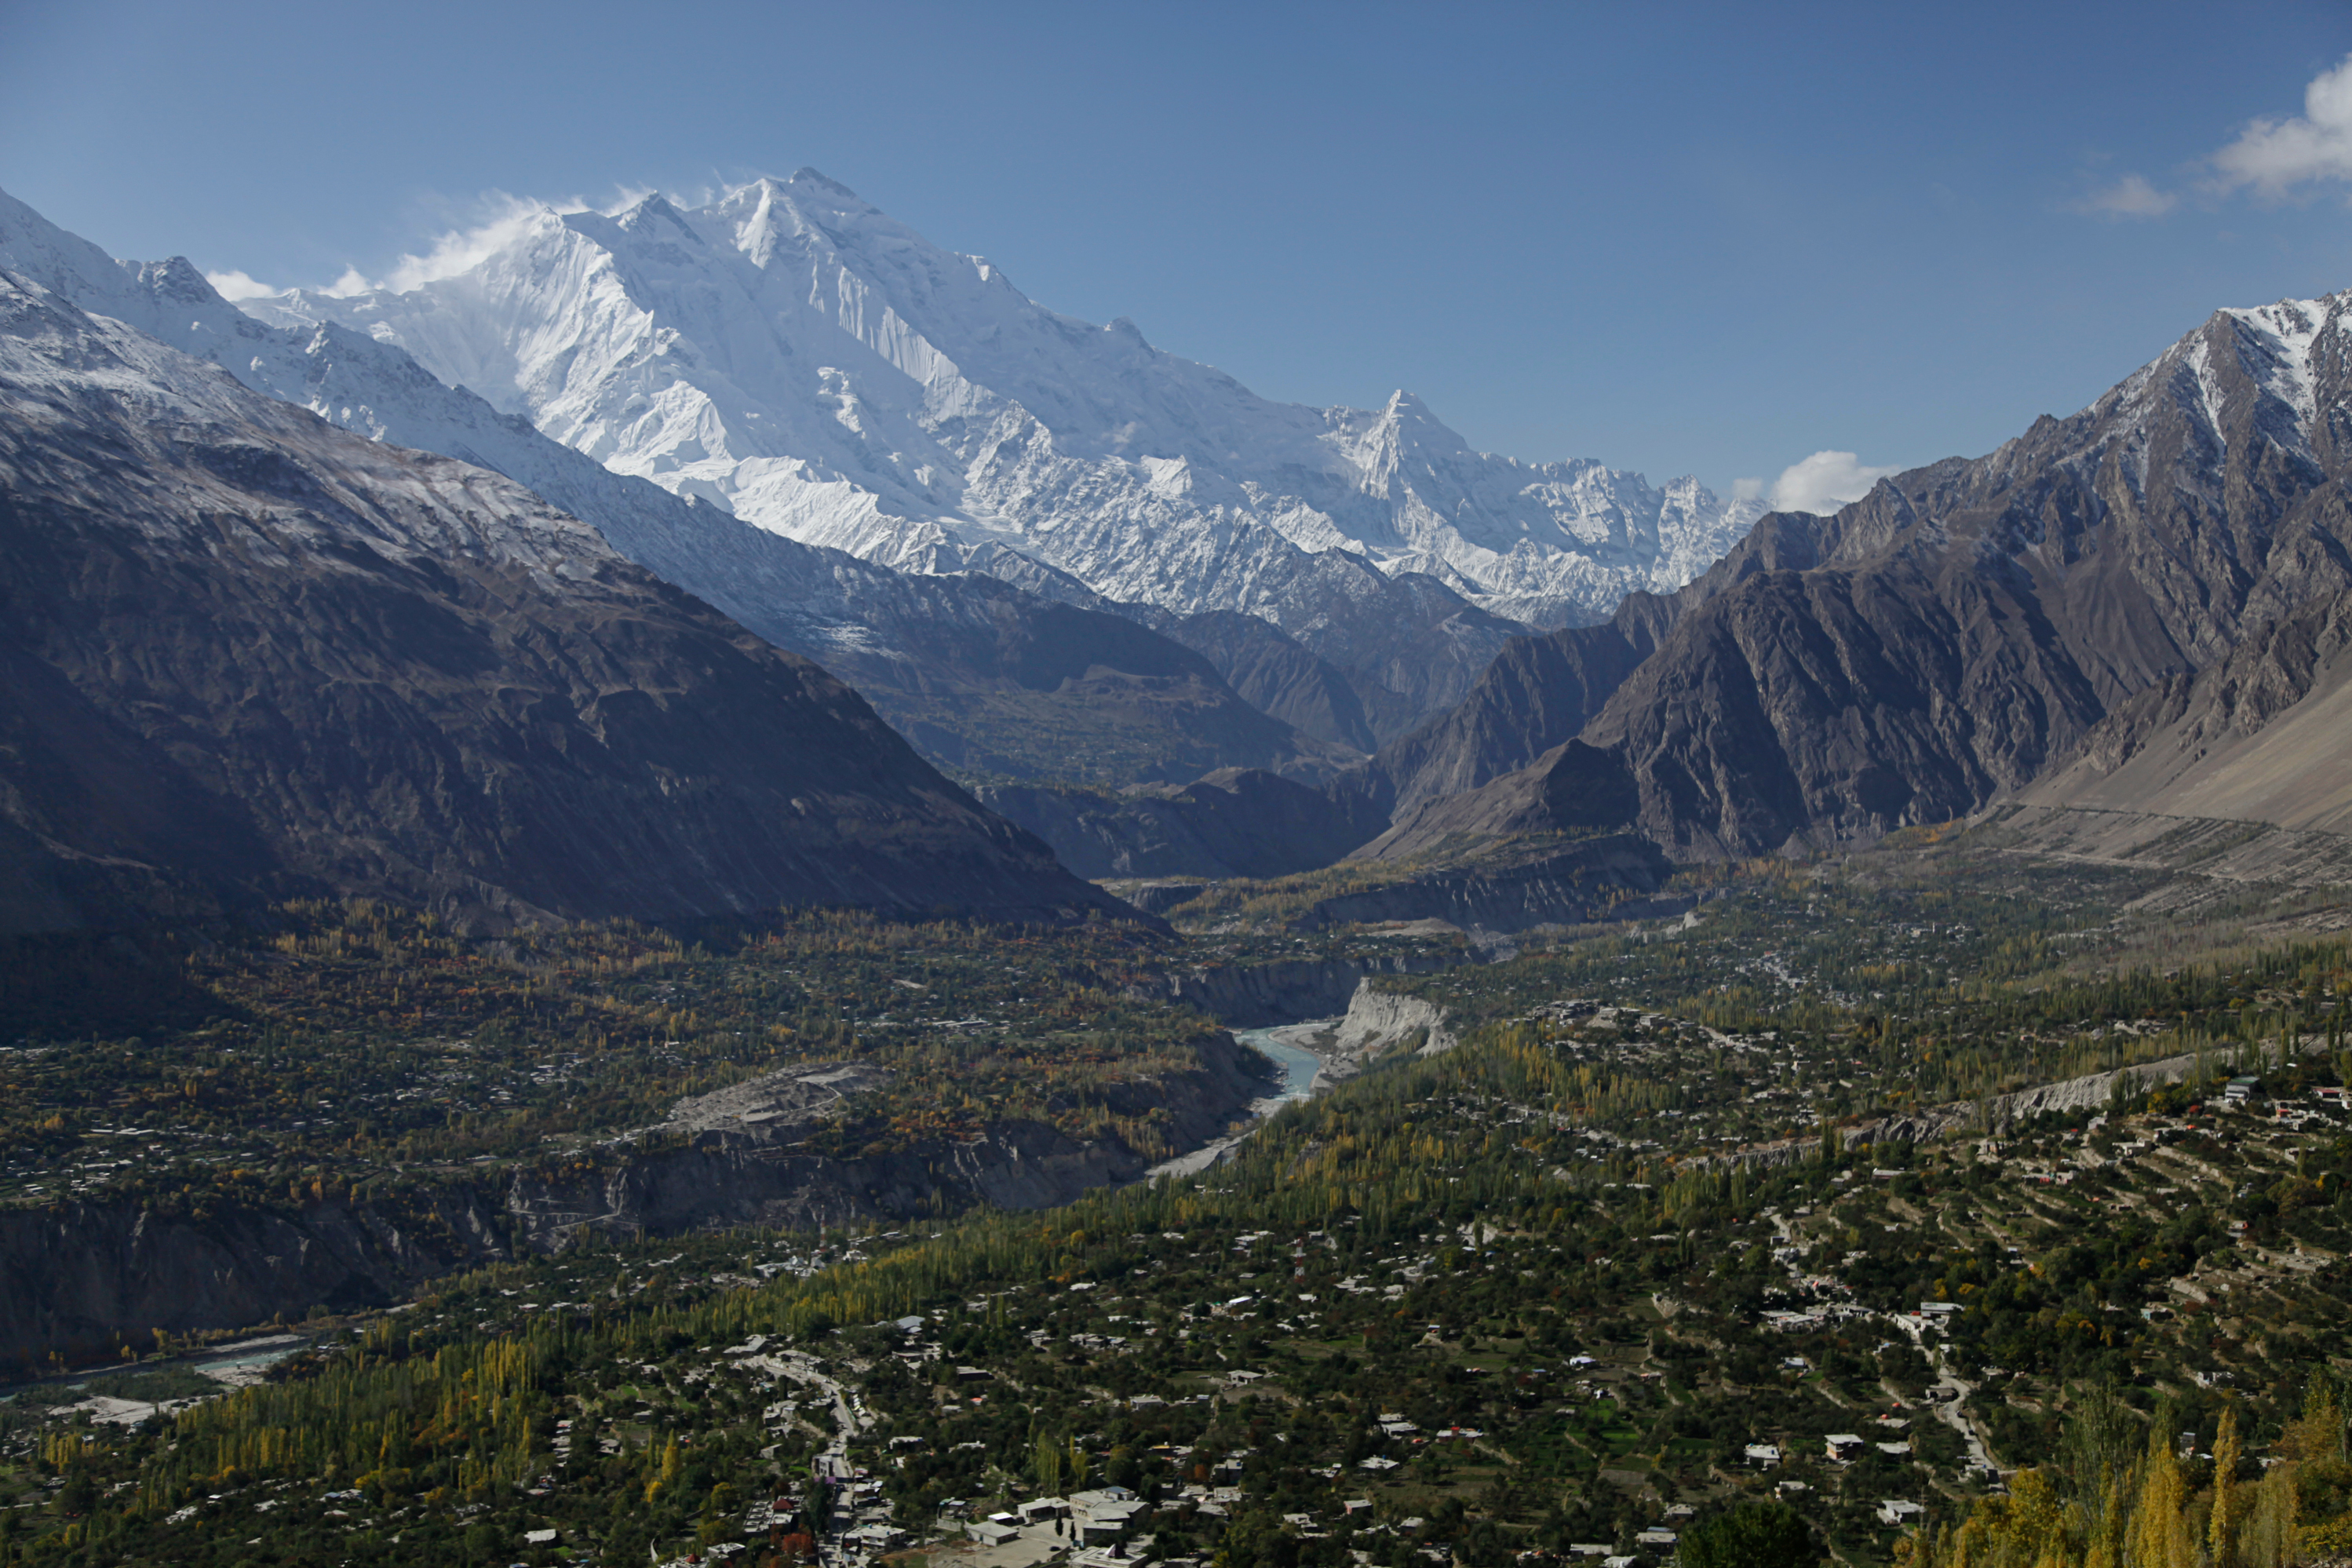 'Maybe It Will Destroy Everything': Pakistan's Melting Glaciers Cause Alarm